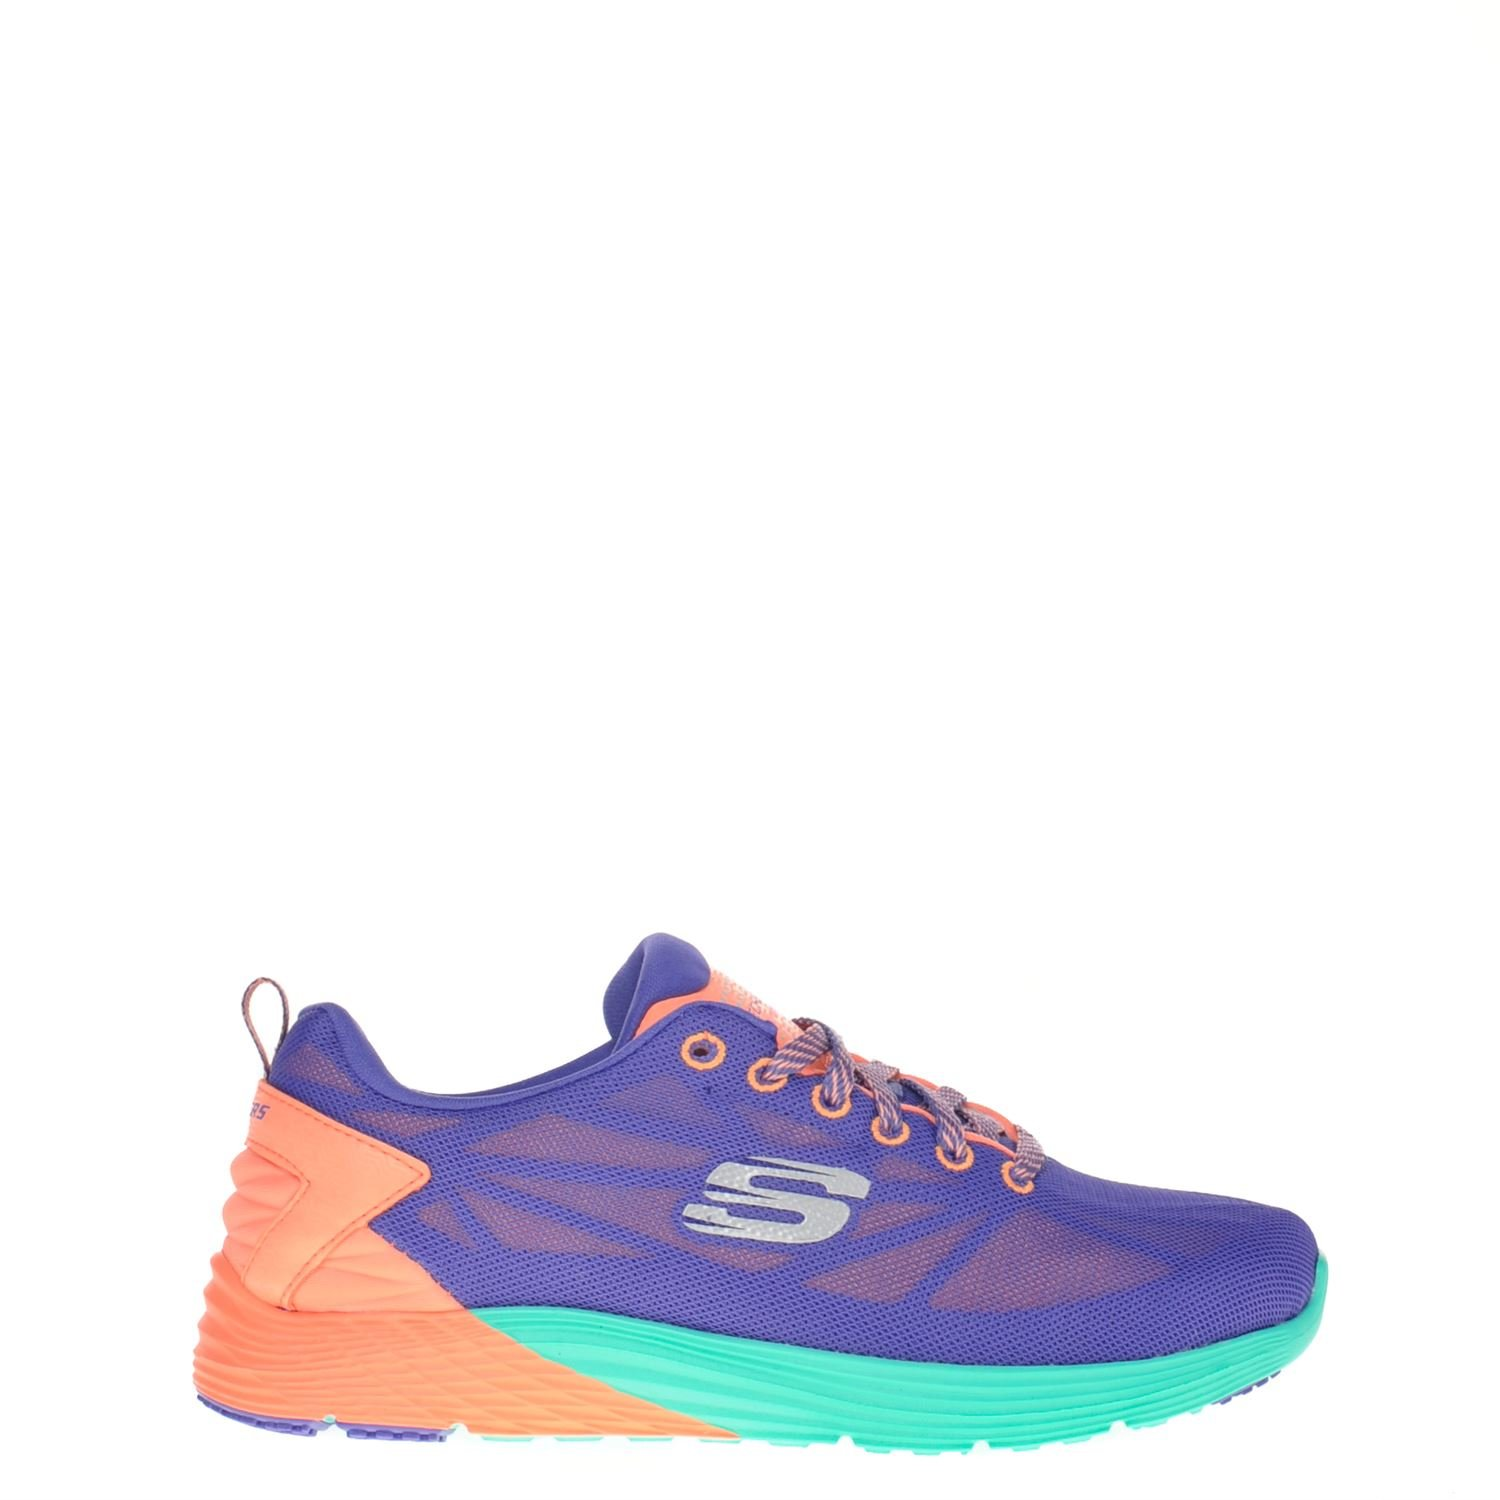 Pourpre Chaussures Sketchers hI5tahbRd